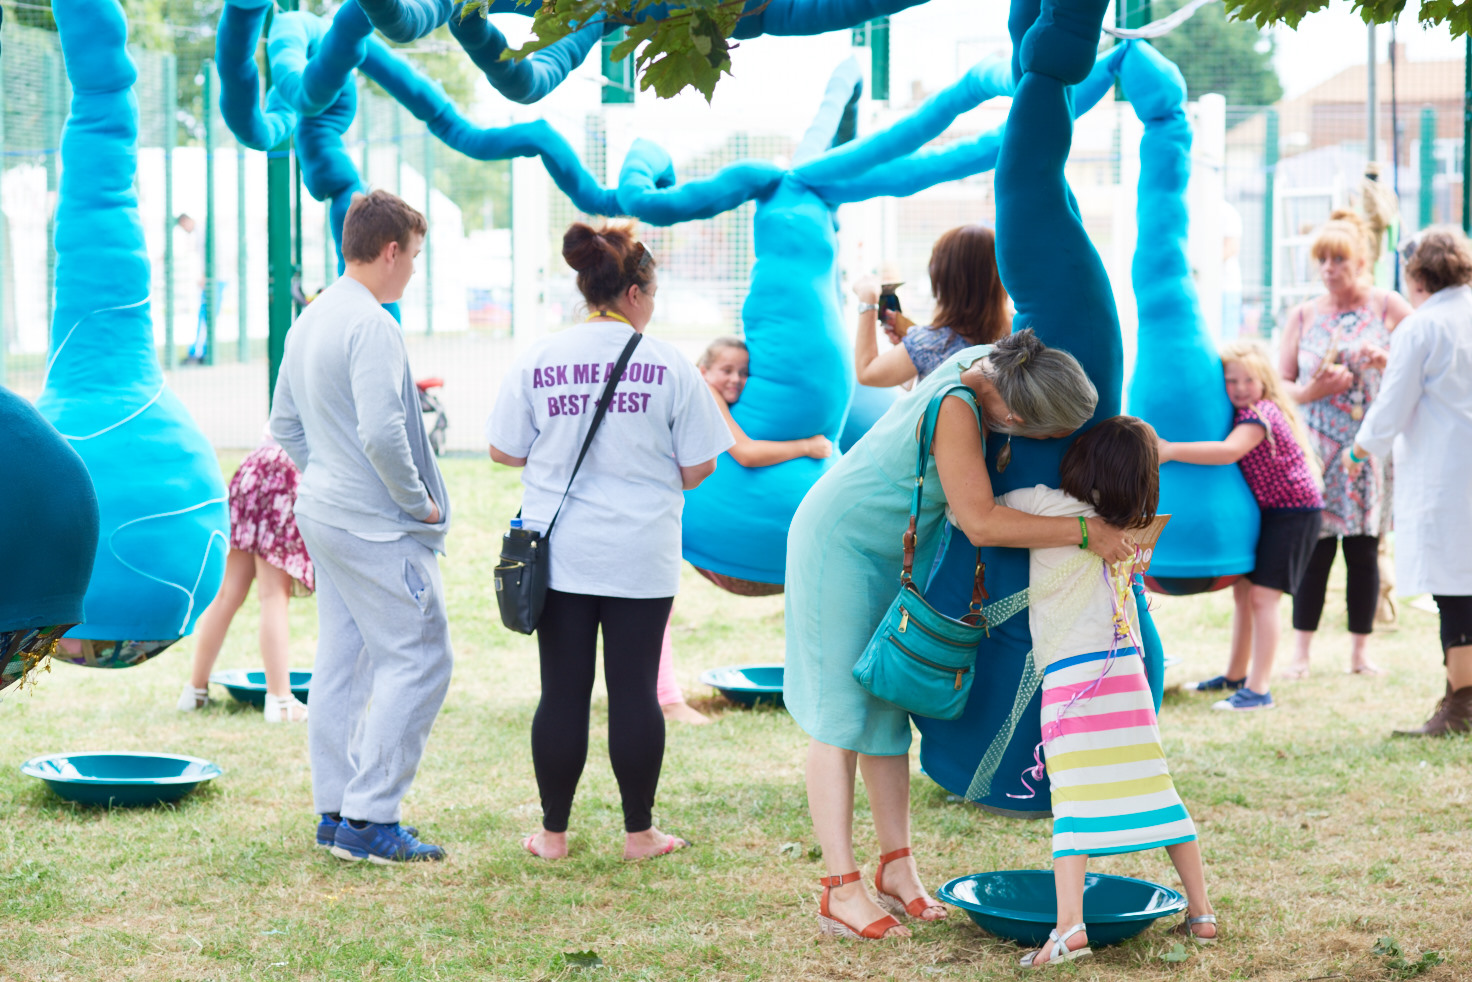 A photo of a playing field with a large art installation. The installation consists of various large blue fabric bulbs hanging down from a network of blue fabric tubes which are strung up in the air using wires attached to nearby trees. About 10 people are grouped around the hanging bulbs, some holding or touching them.